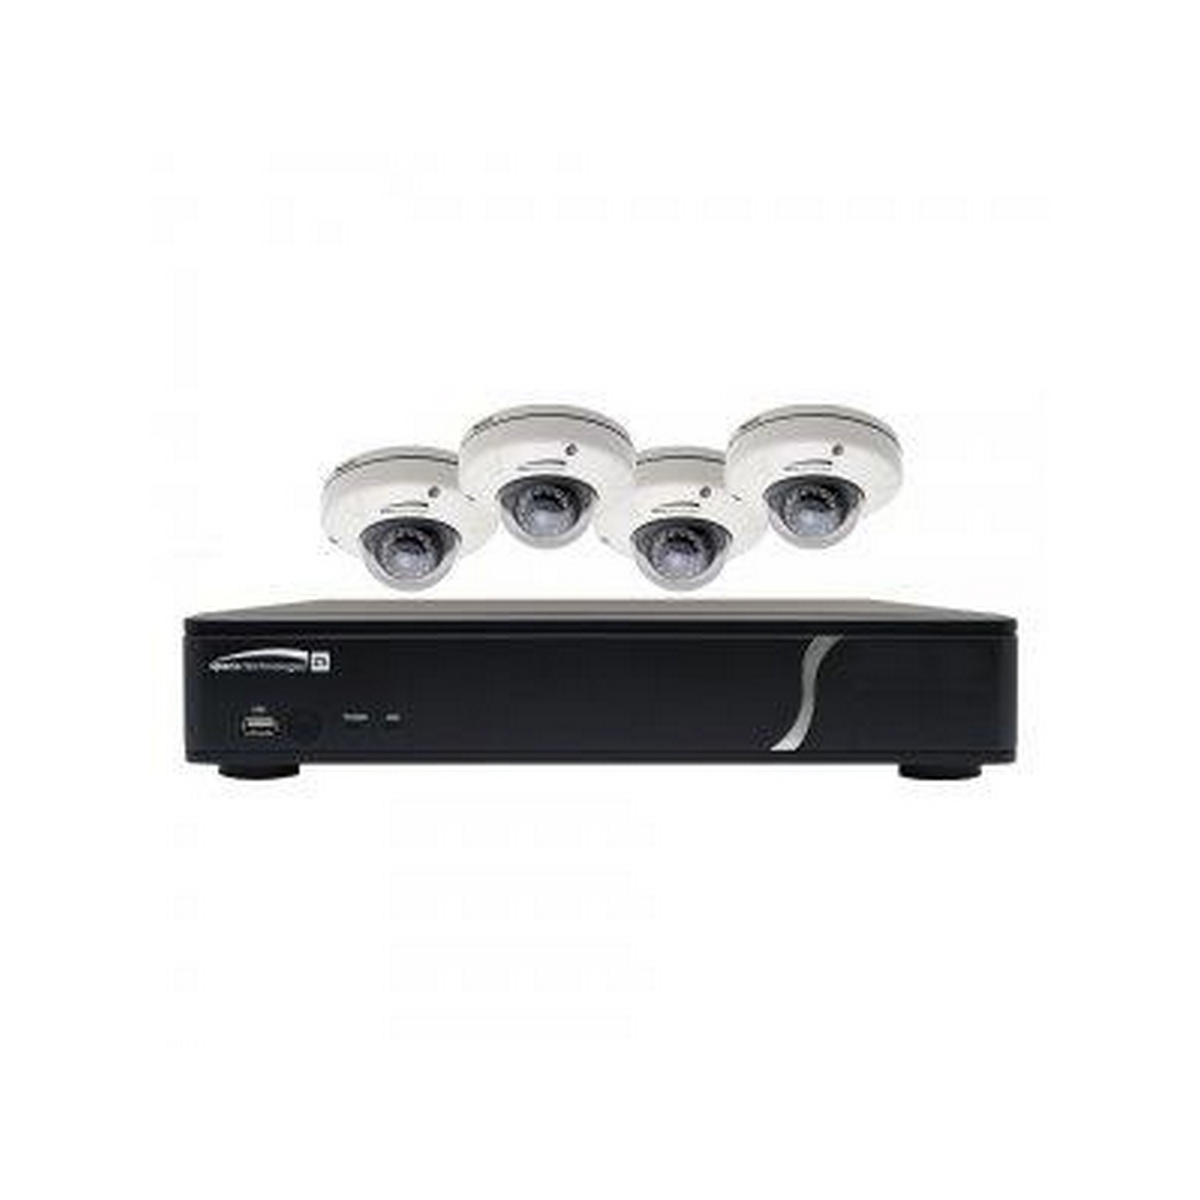 Speco ZIPKIT4D1 4 Channel NVR with 4 Channel Built-In PoE,